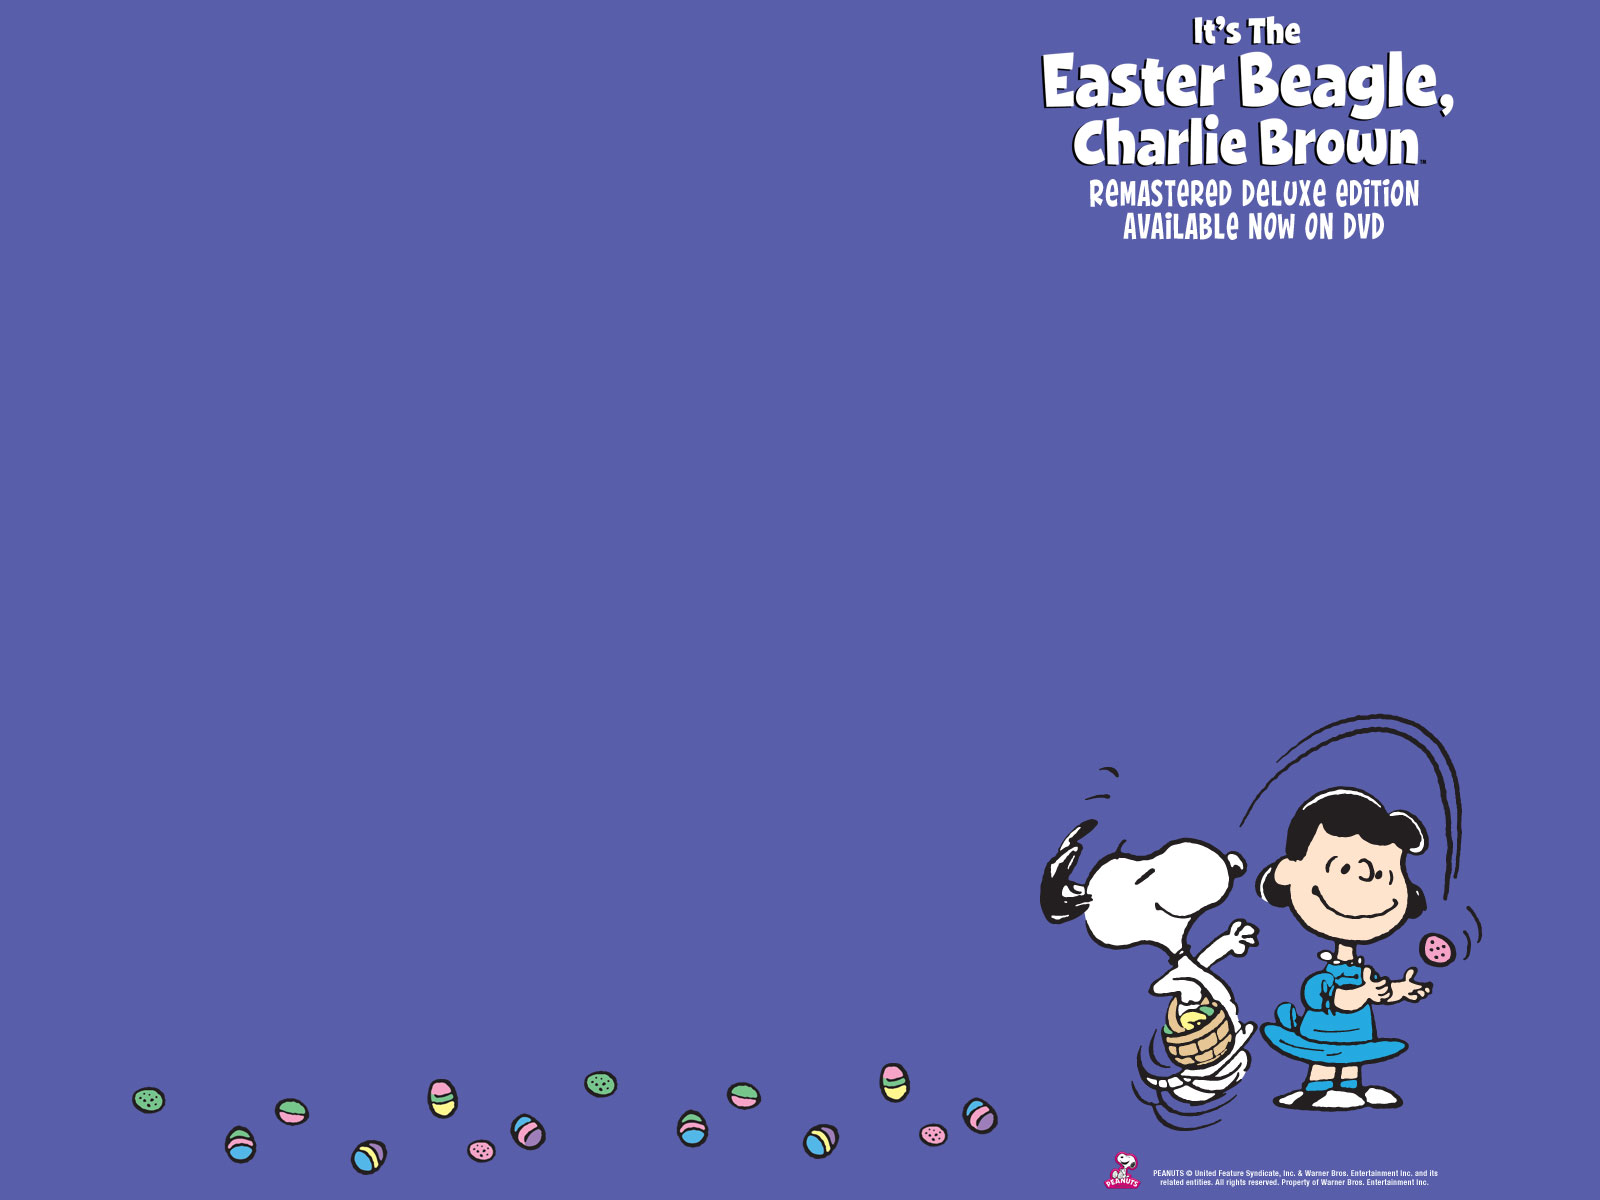 Charlie Brown Easter Charlie brown desktop 1600x1200